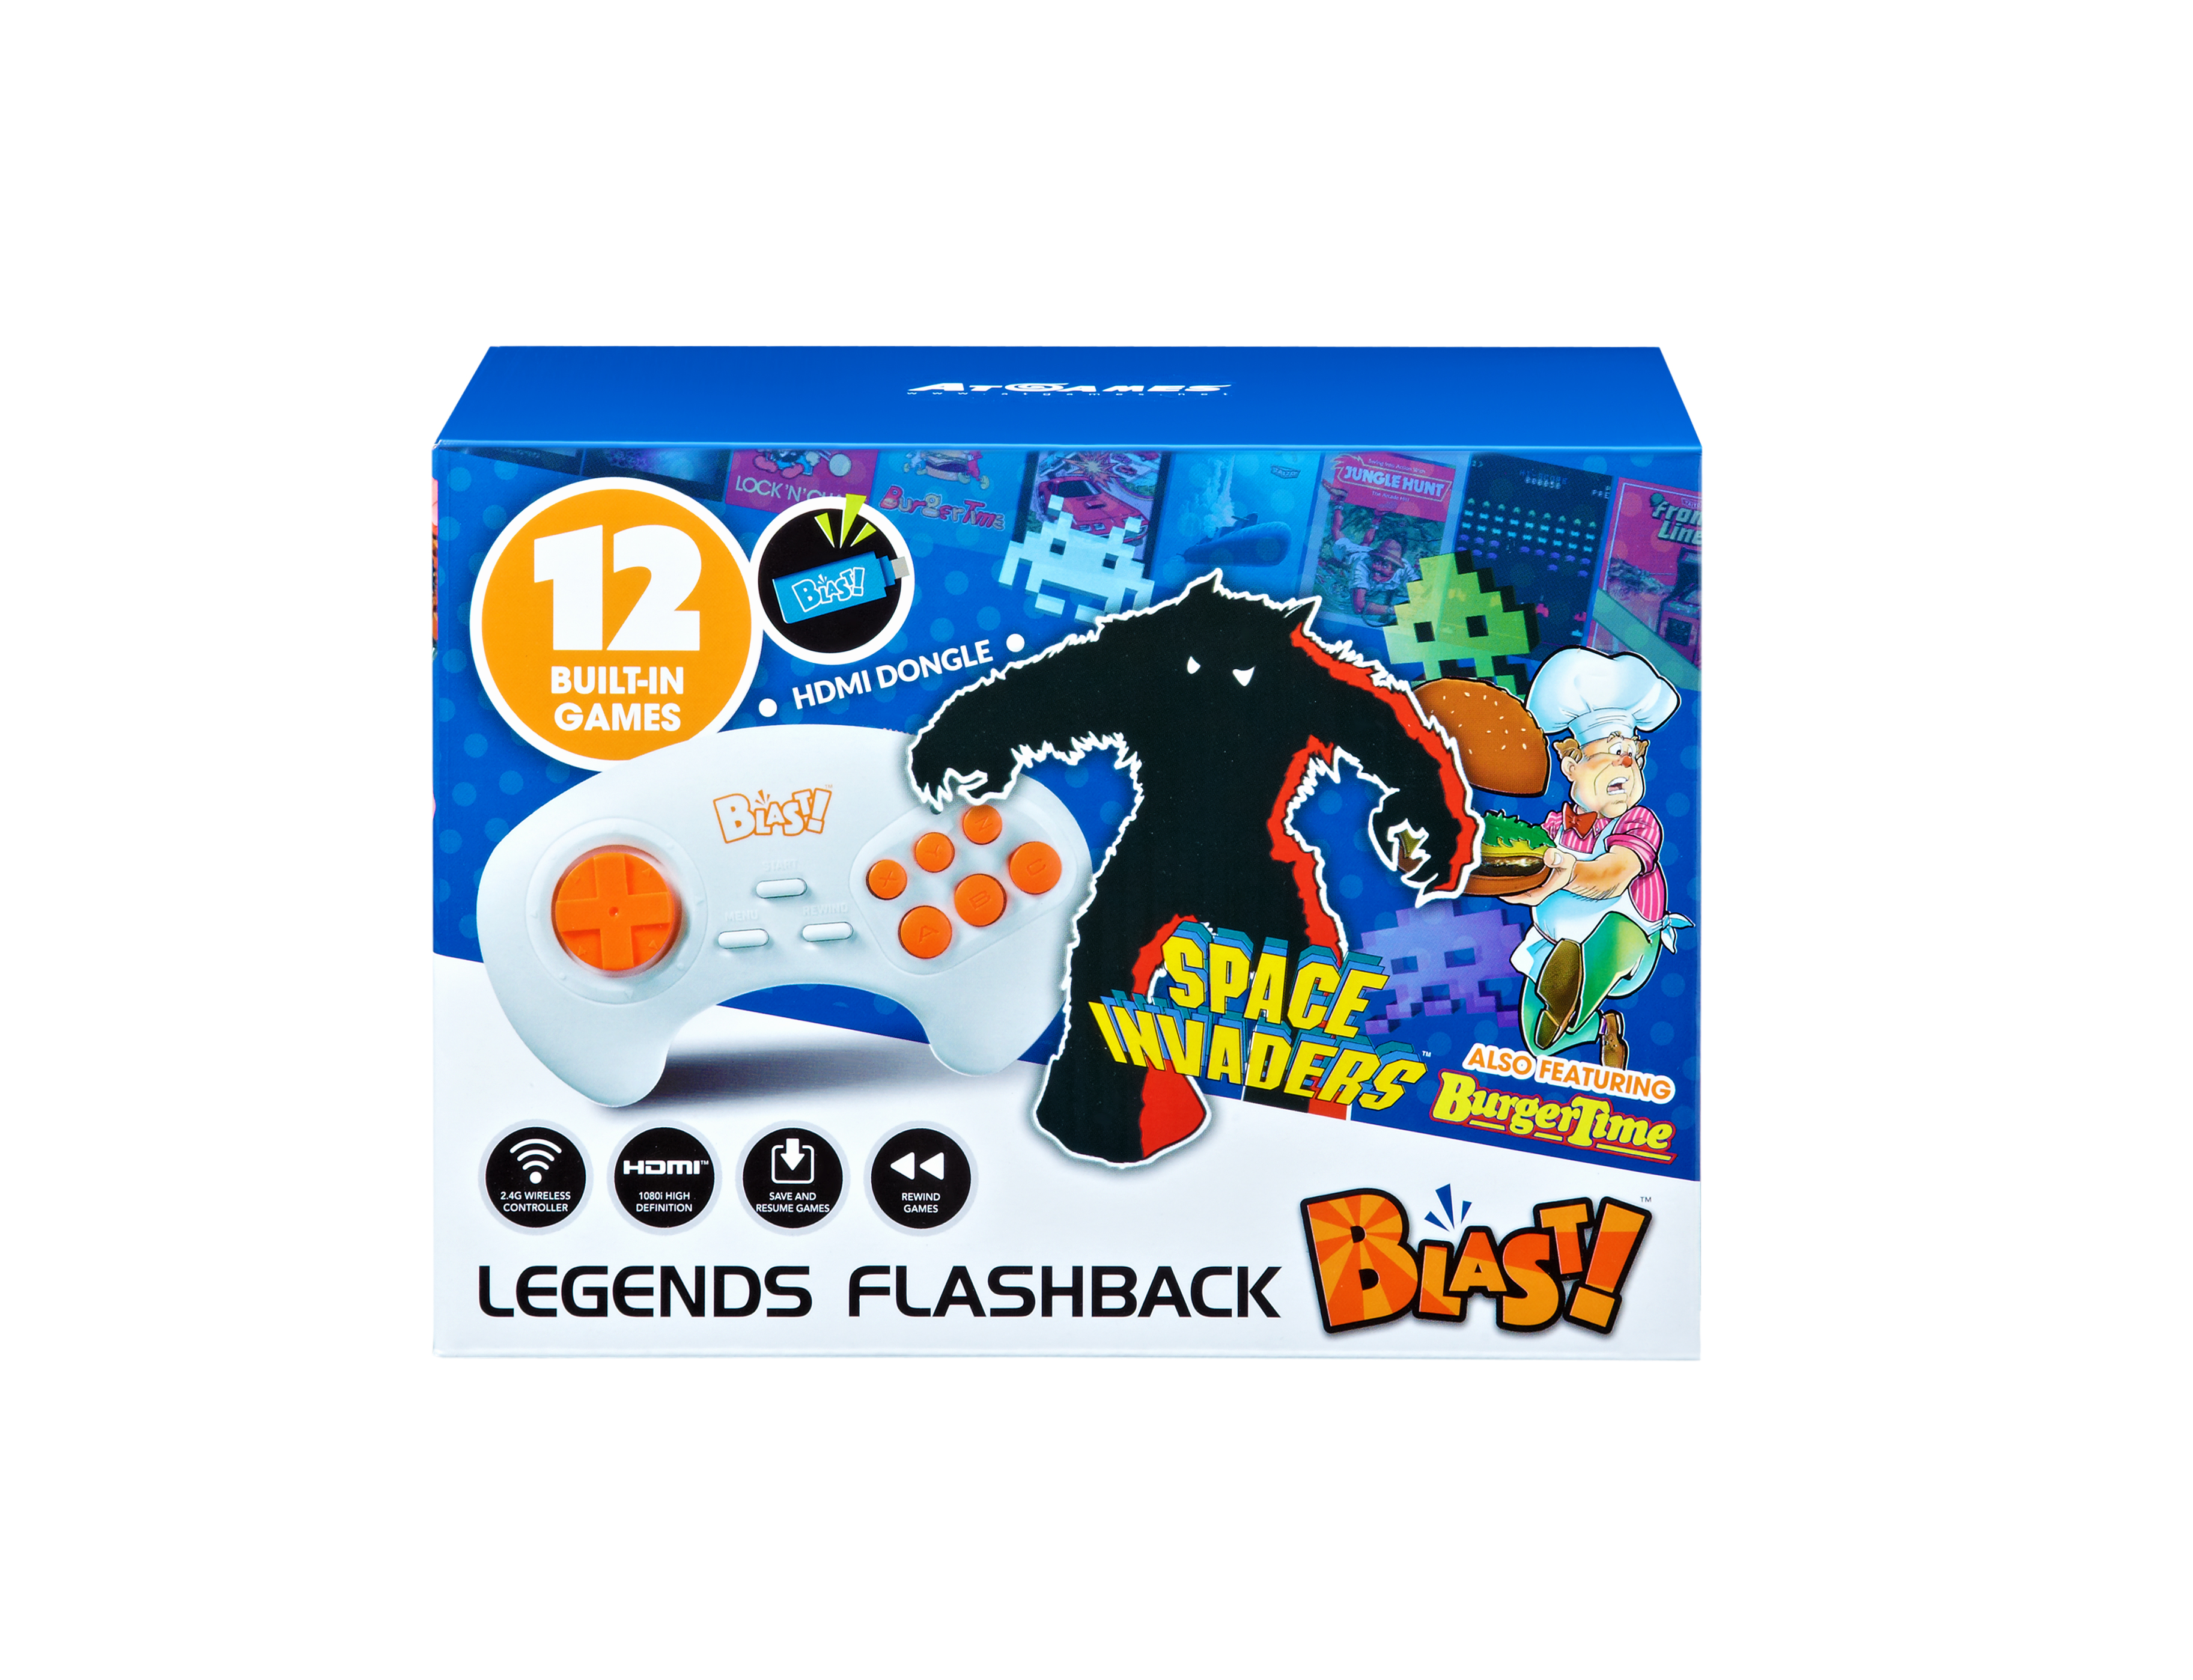 The Official Game List for the AtGames Legends Flashback Blast